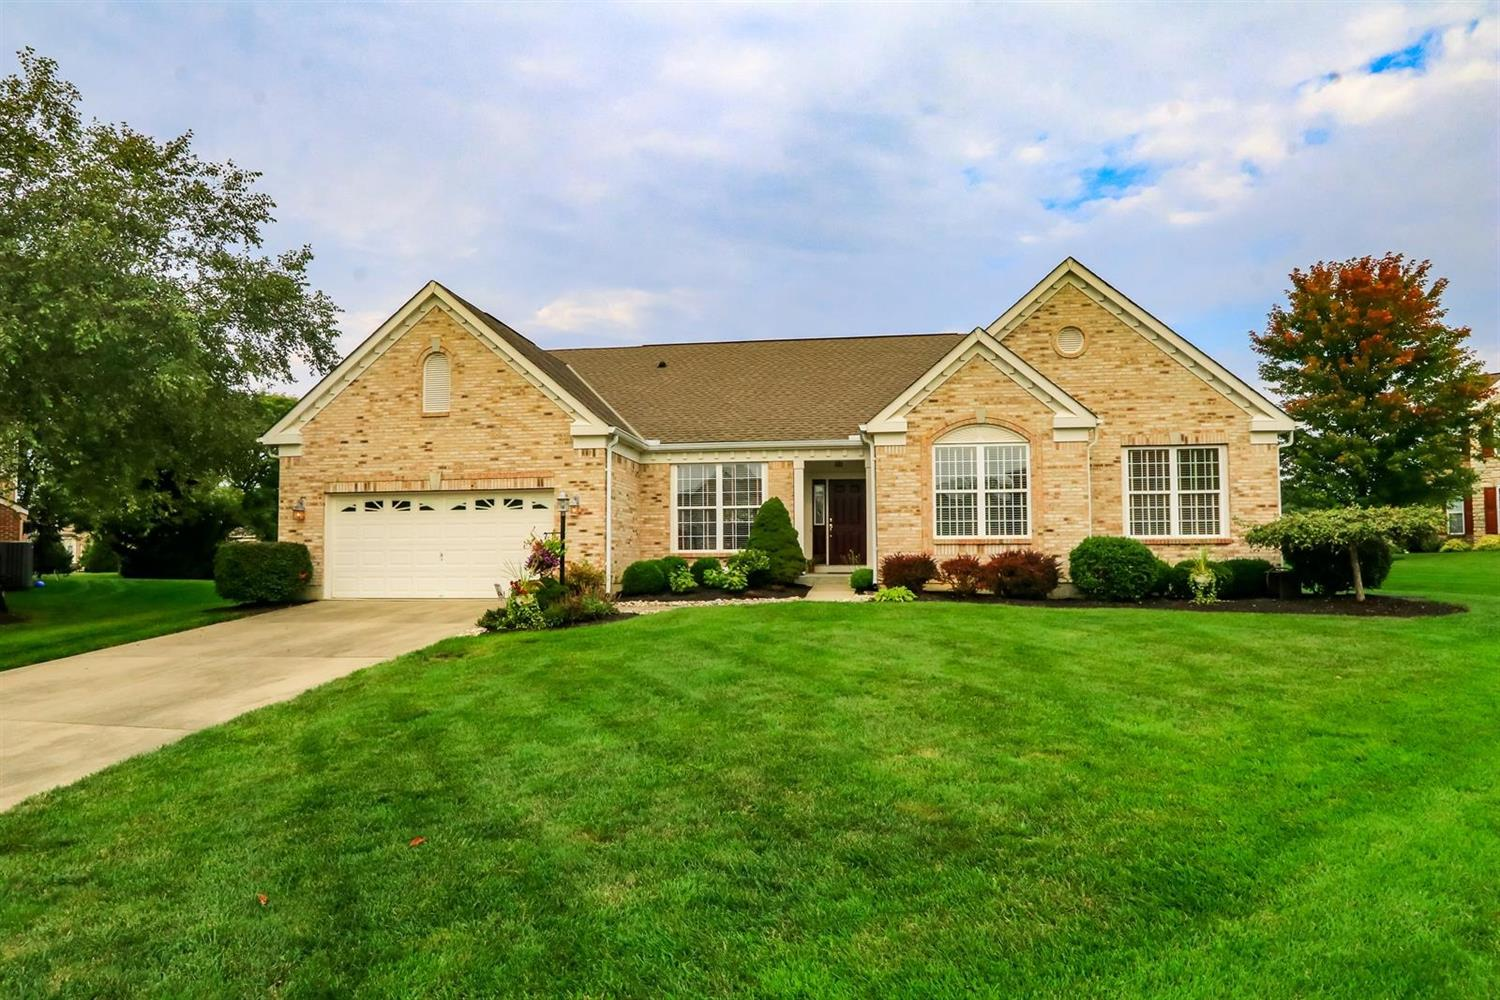 Property for sale at 119 Gamekeepers Lane, Loveland,  Ohio 45140